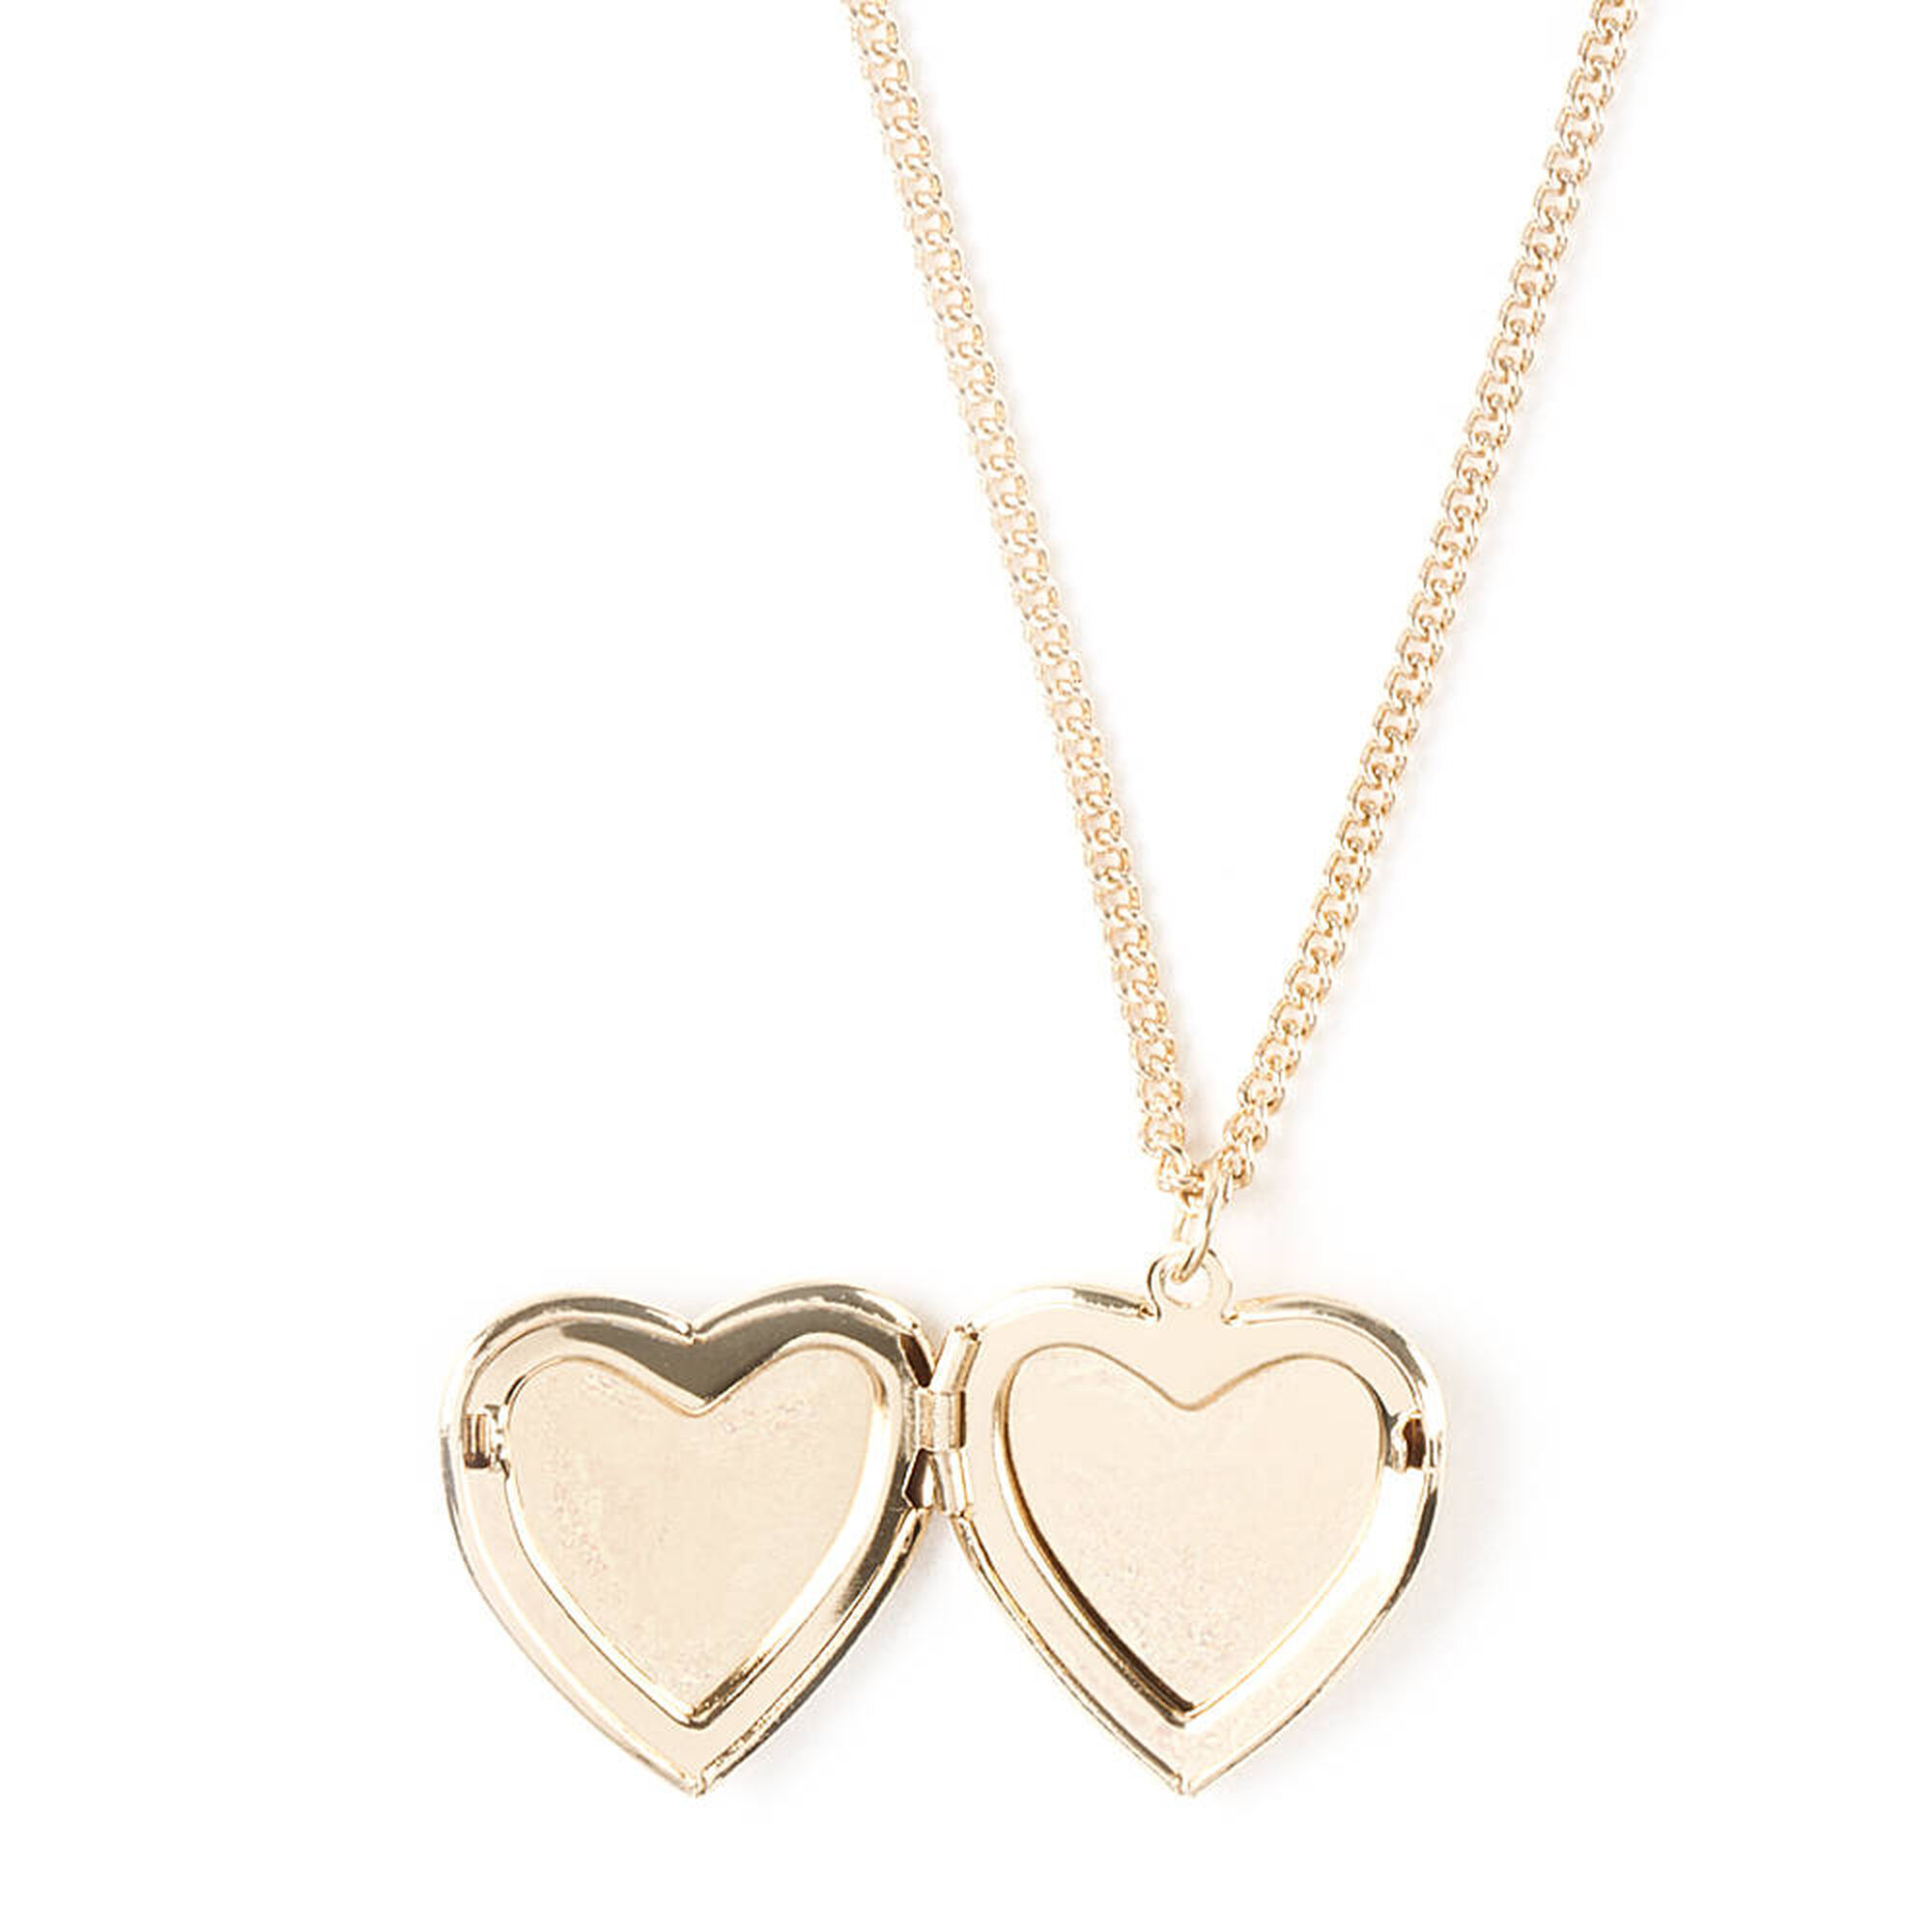 Floral Heart Shaped Locket Pendant Necklace | Claire's US